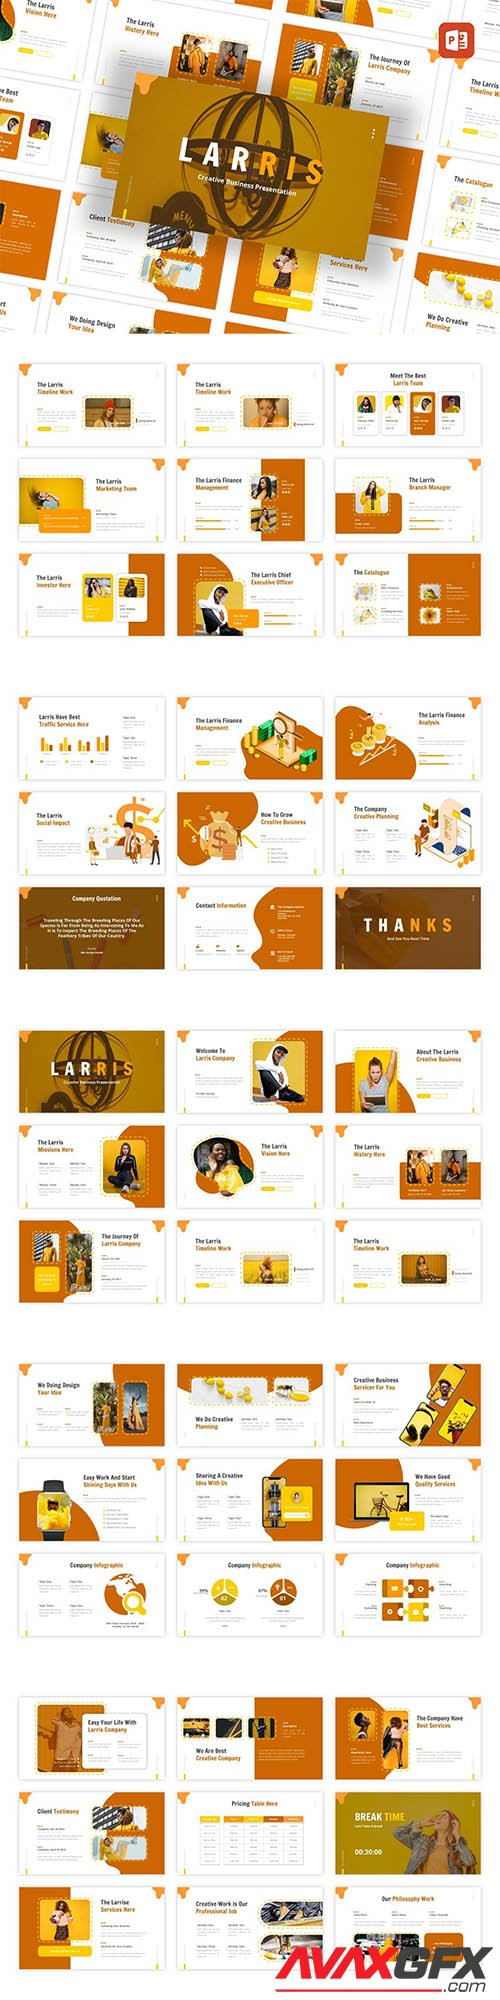 Larris - Creative Business PowerPoint, Keynote, Google Slides Templates